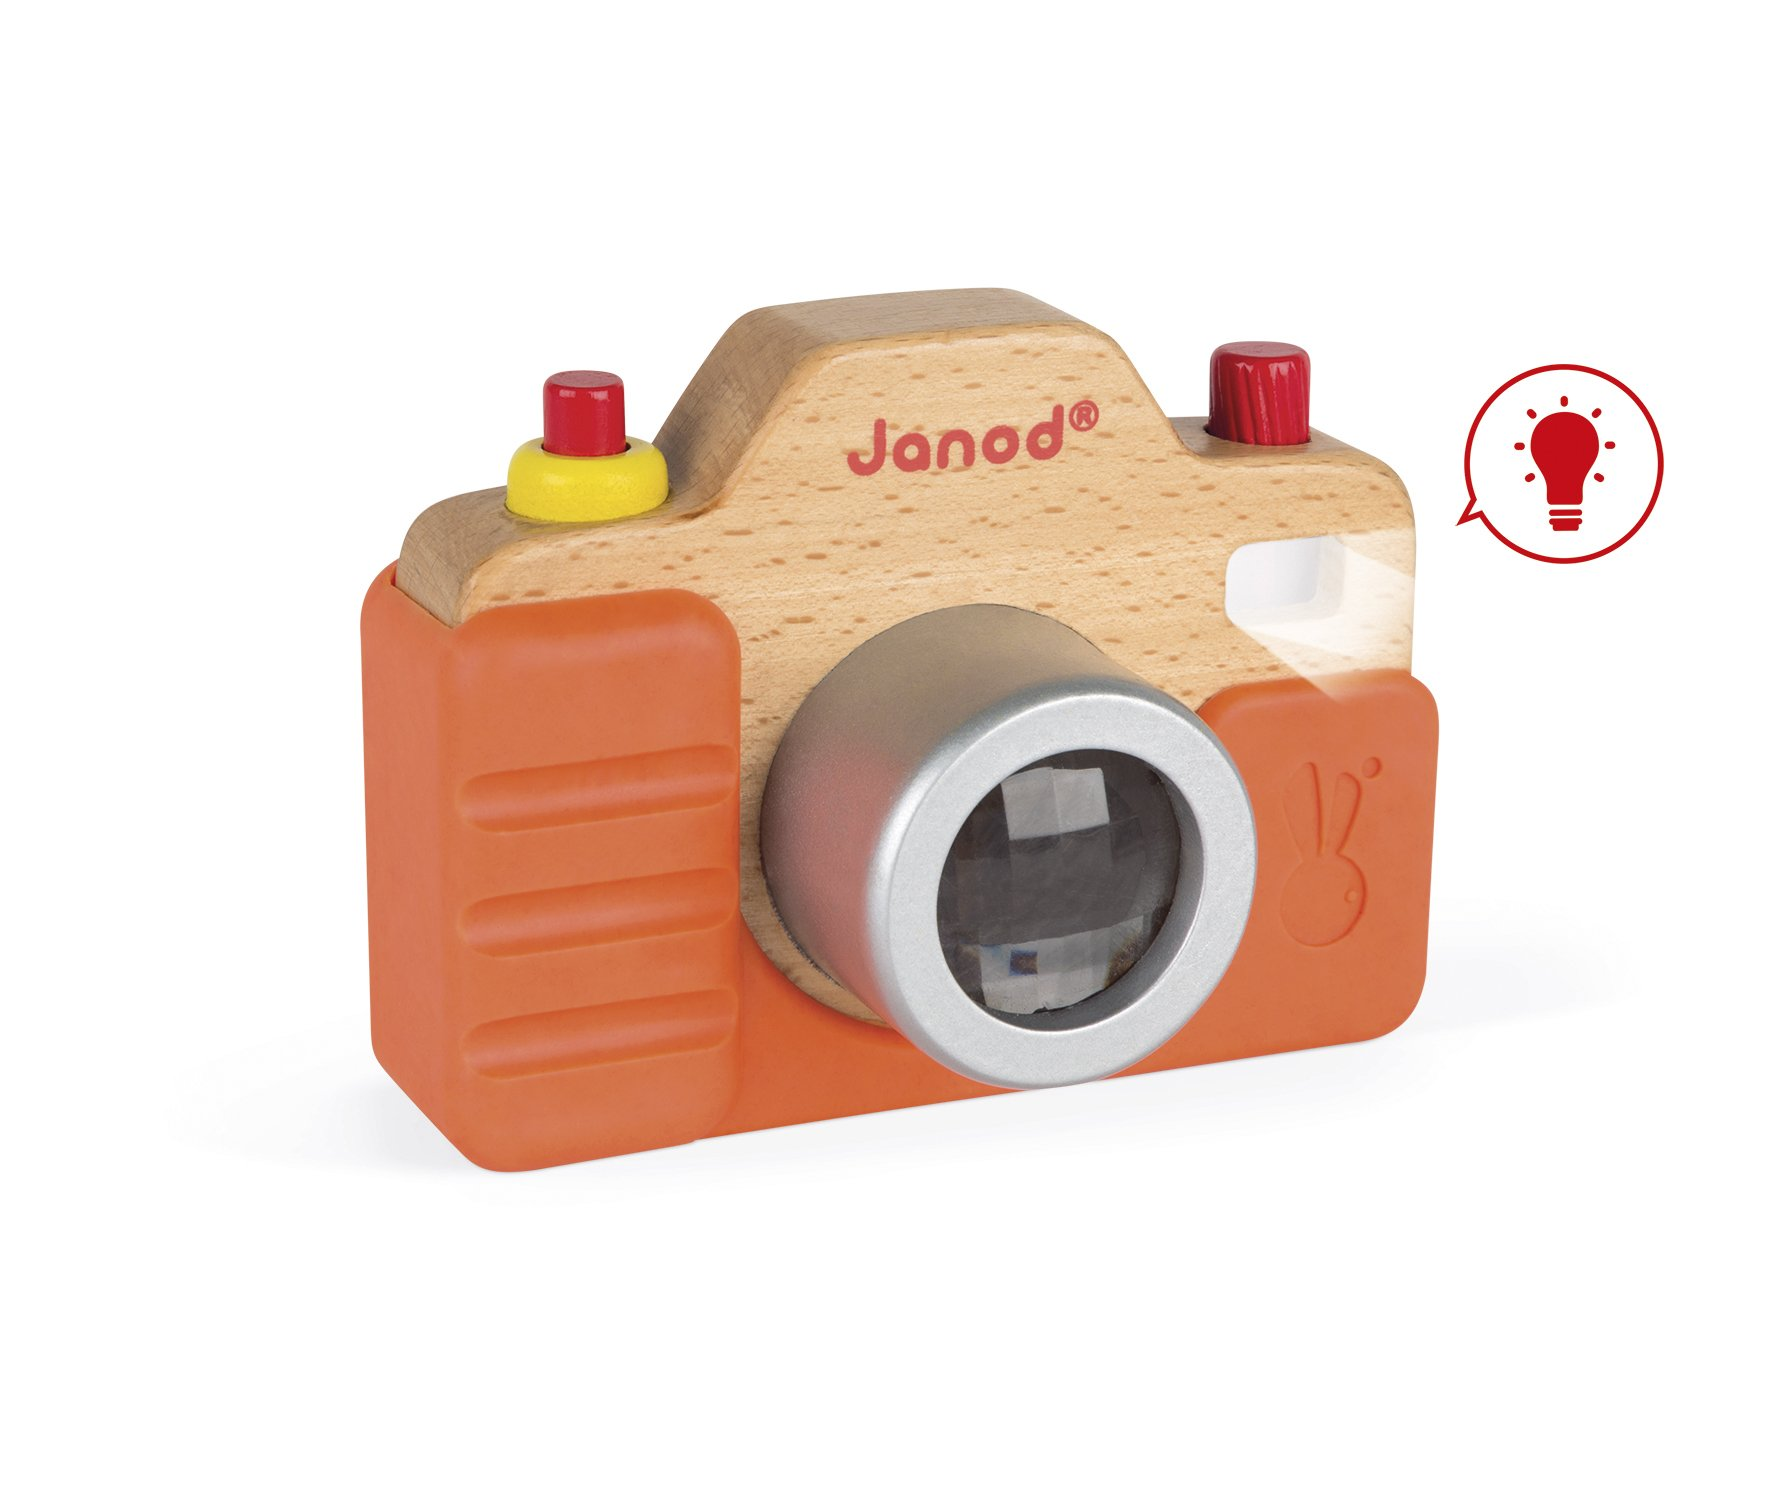 Janod Wooden Interactive Sound Camera Toy by Janod (Image #1)